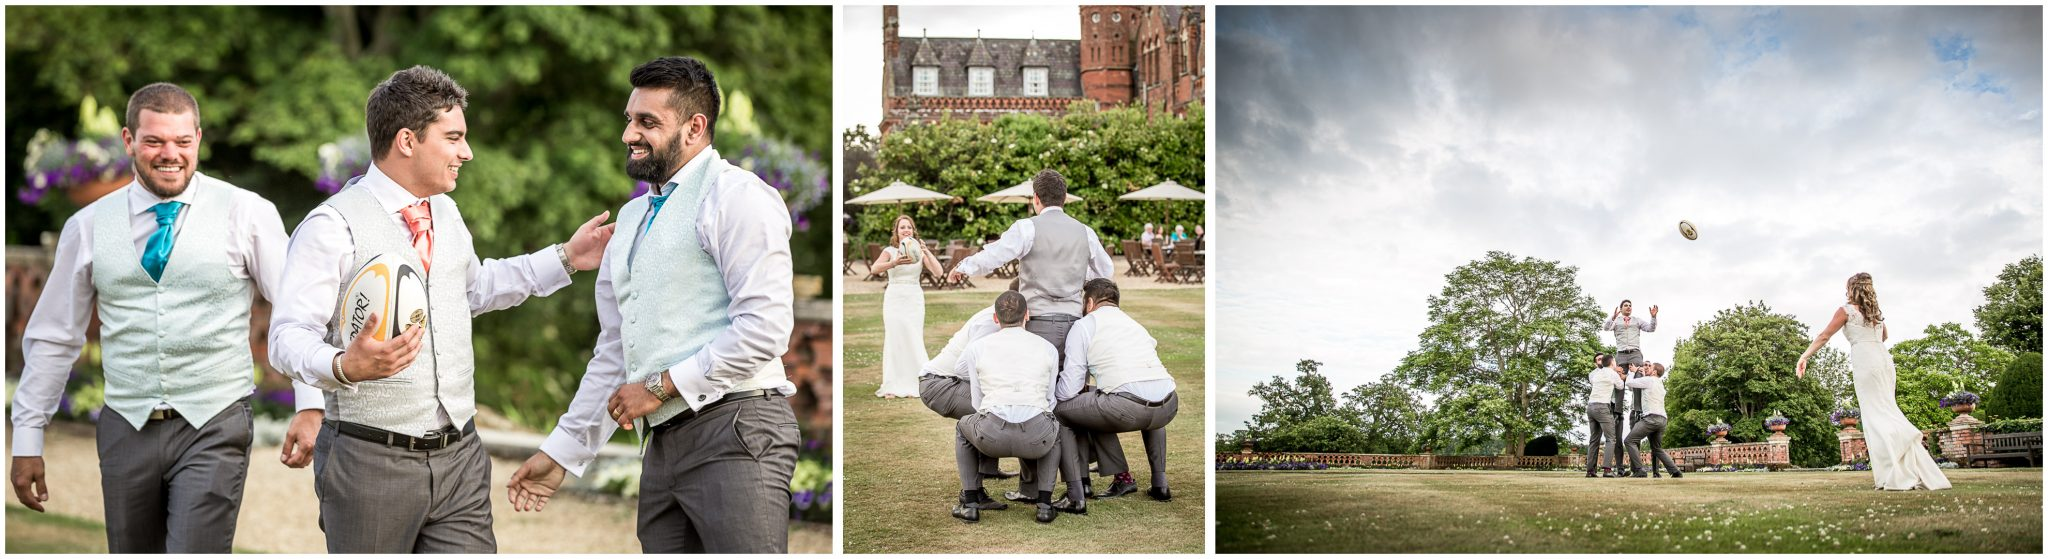 Rugby couple bride and groom at the Elvetham